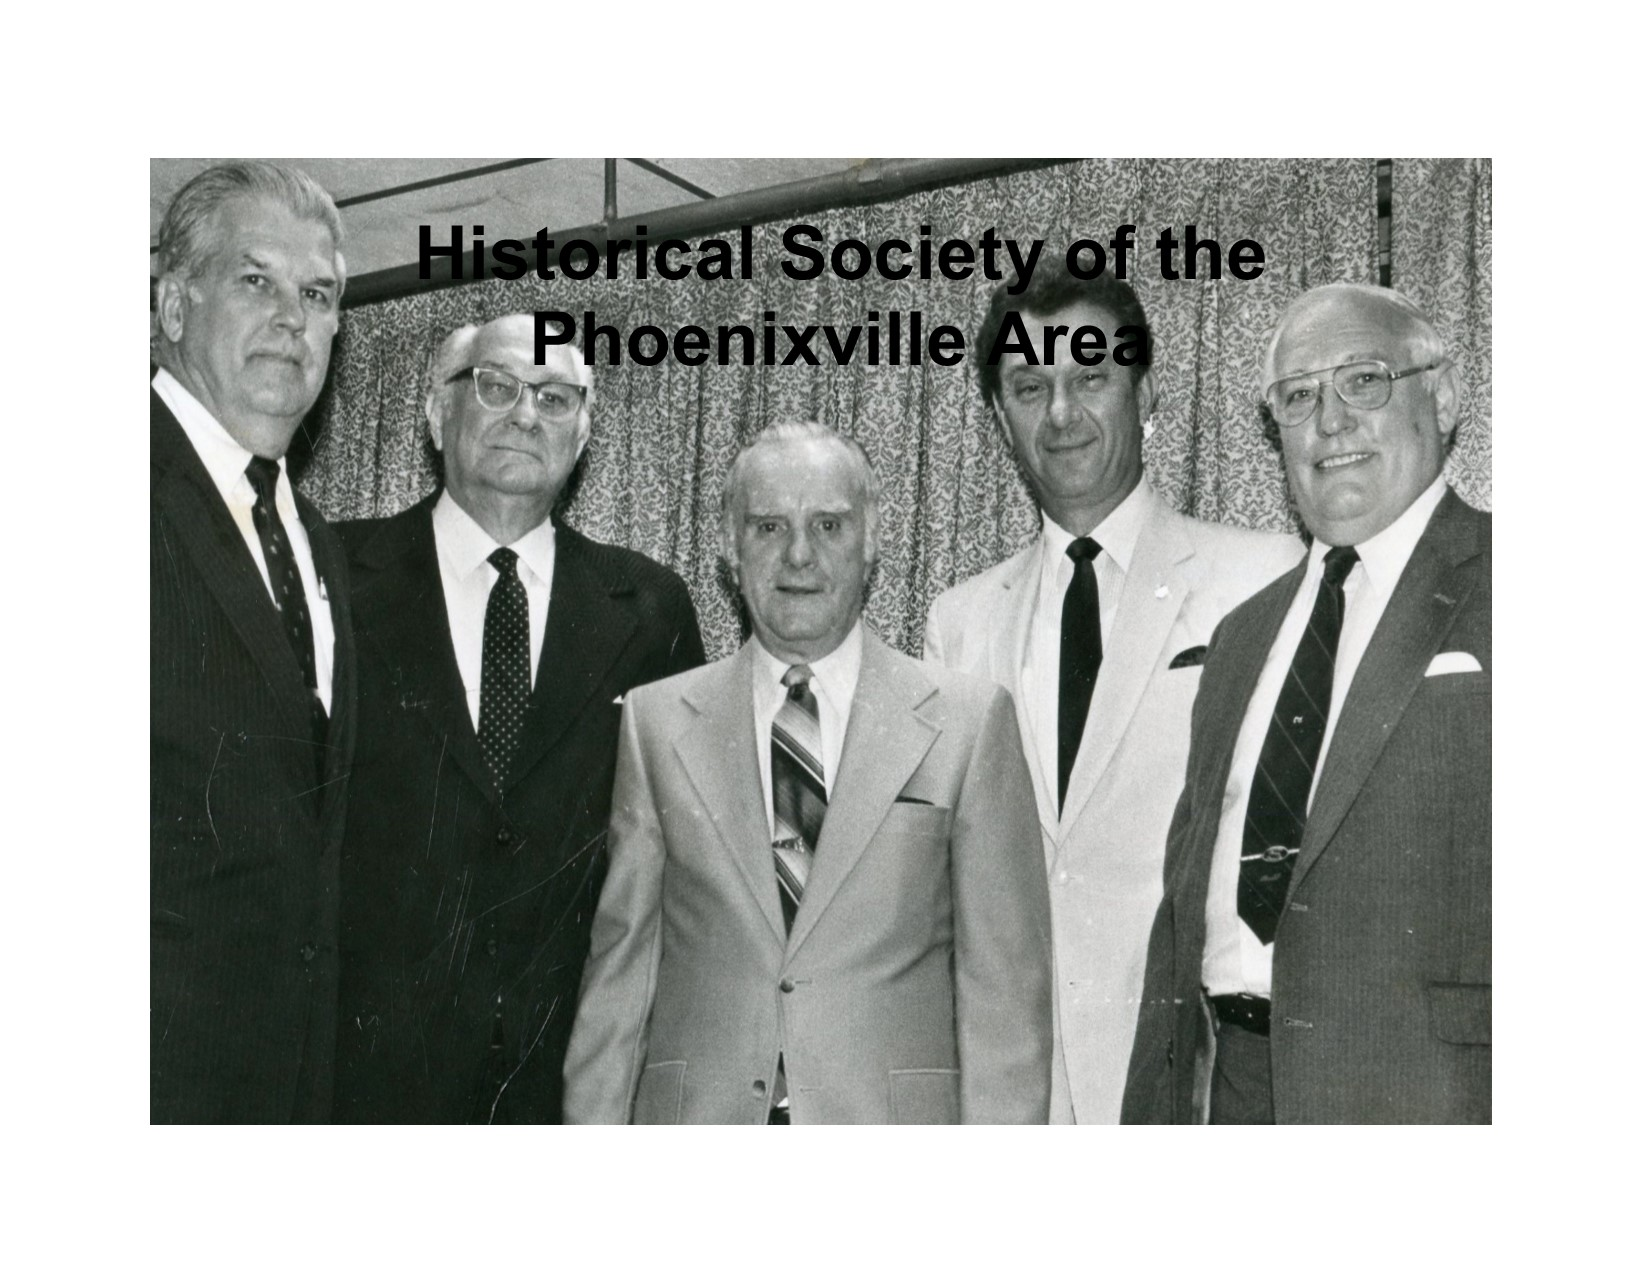 Copyrighted Historical Society of Phoenixville Area